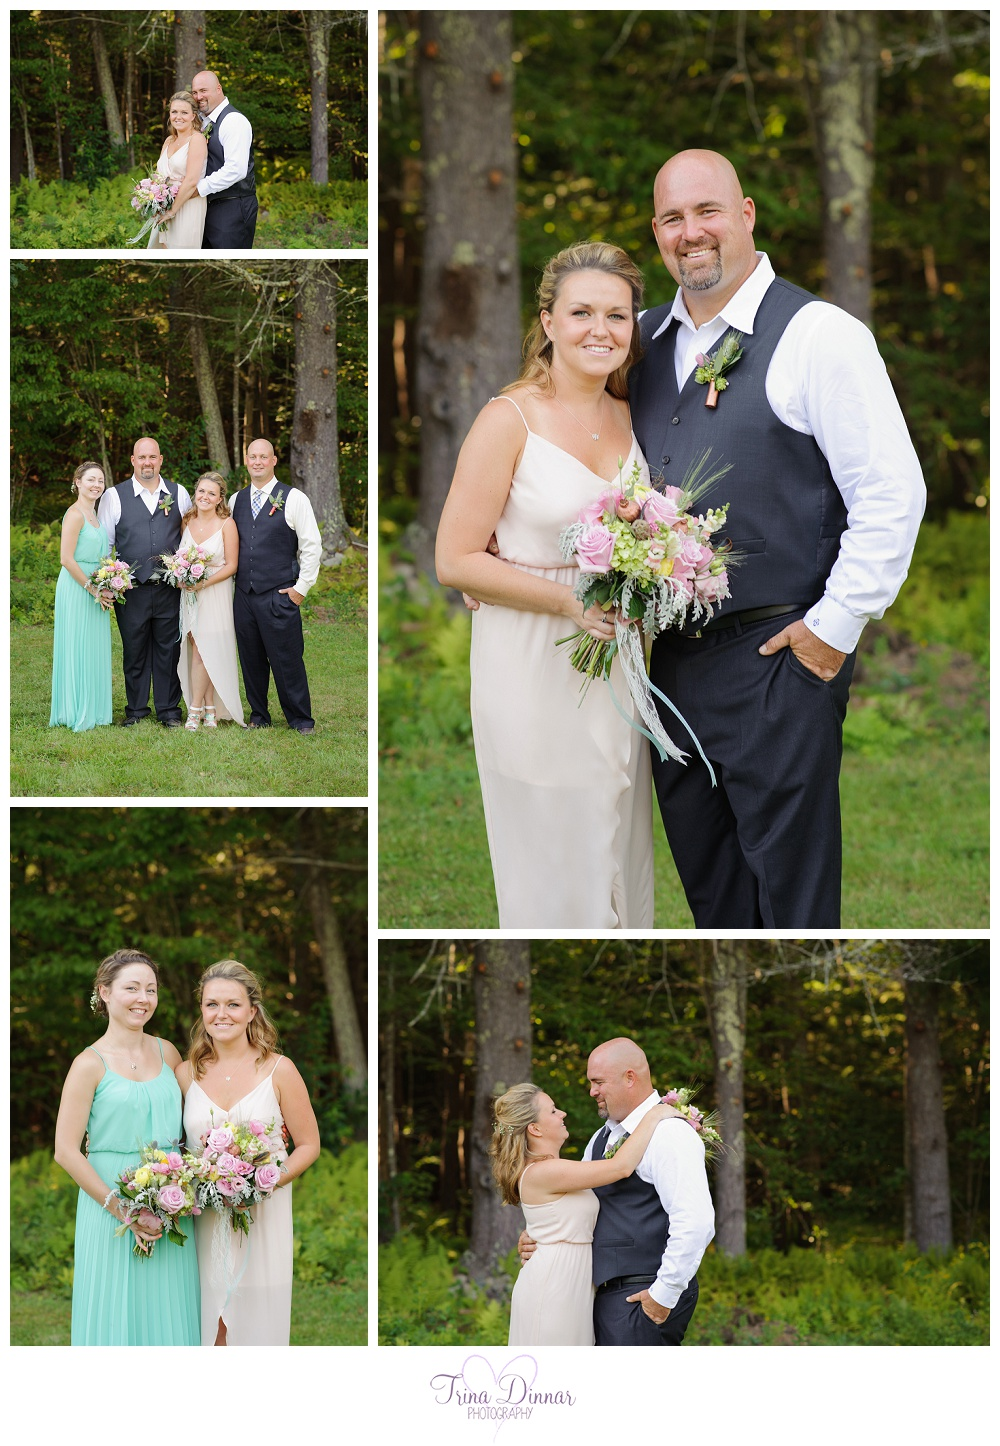 Wedding Photography in South Berwick, Maine